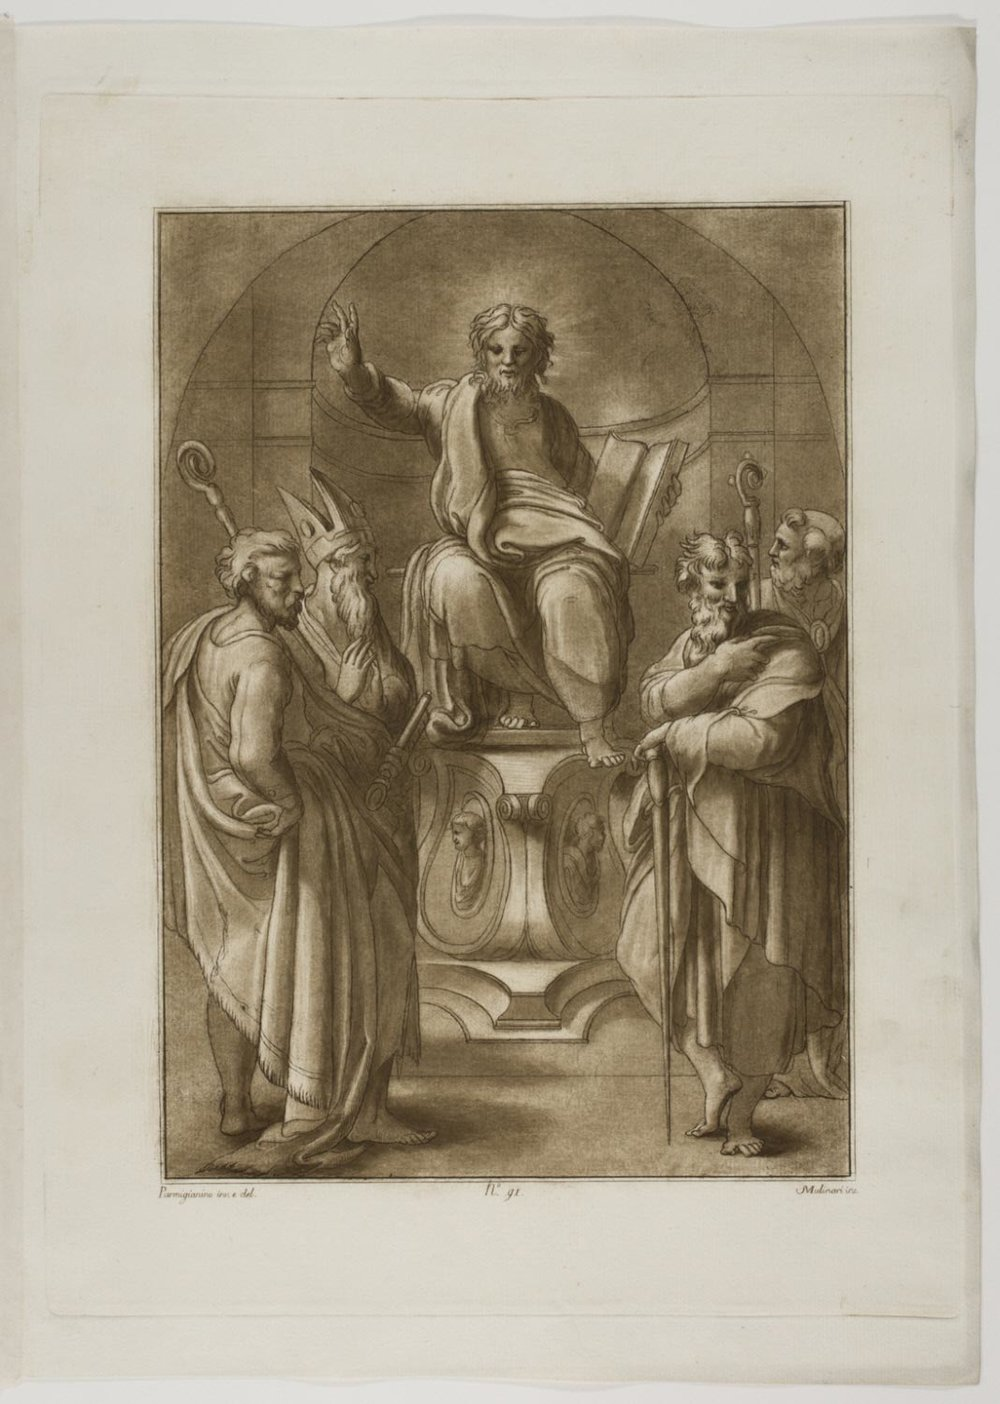 Christ Enthroned with Saints  , c. 1774, by Stefano Mulinari, Italian from the  Philadelphia Museum of Art